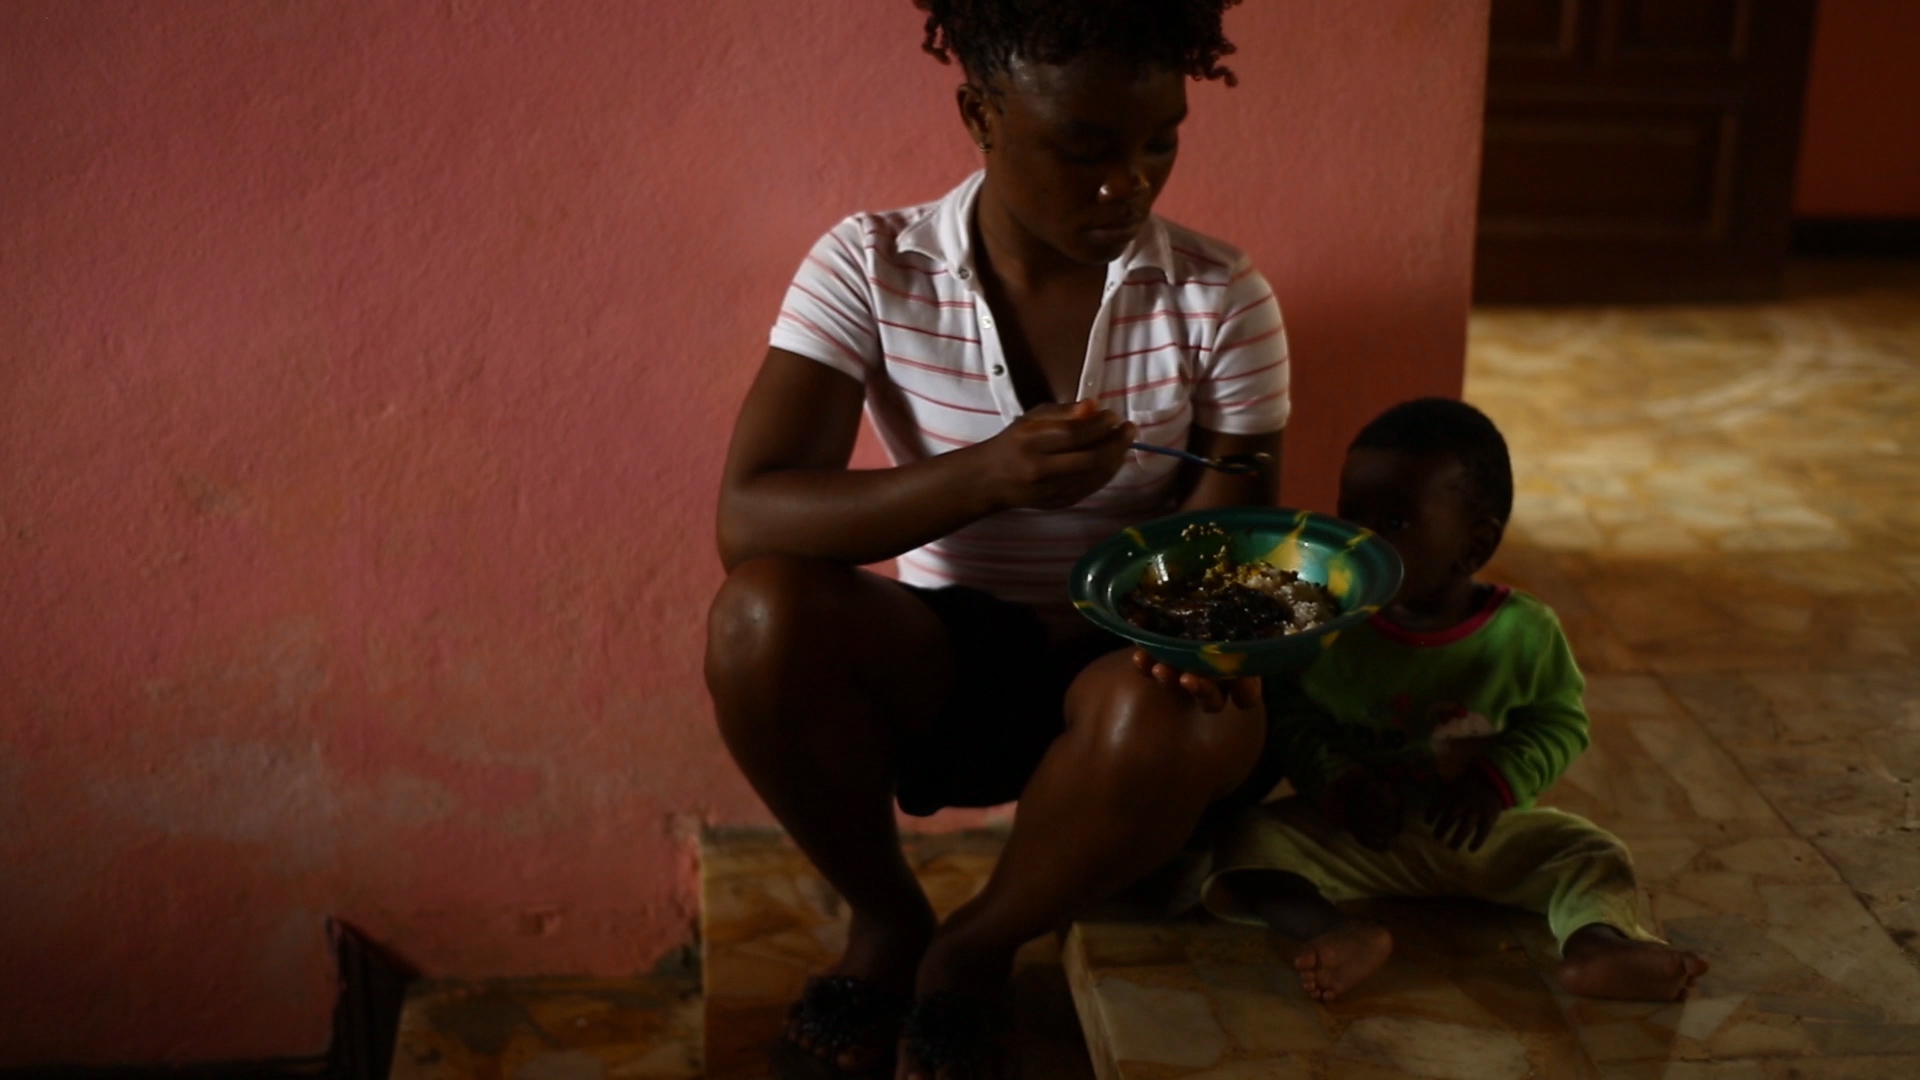 Ebola survivor Decontee Davis cares for a child who has been in contact with an Ebola patient